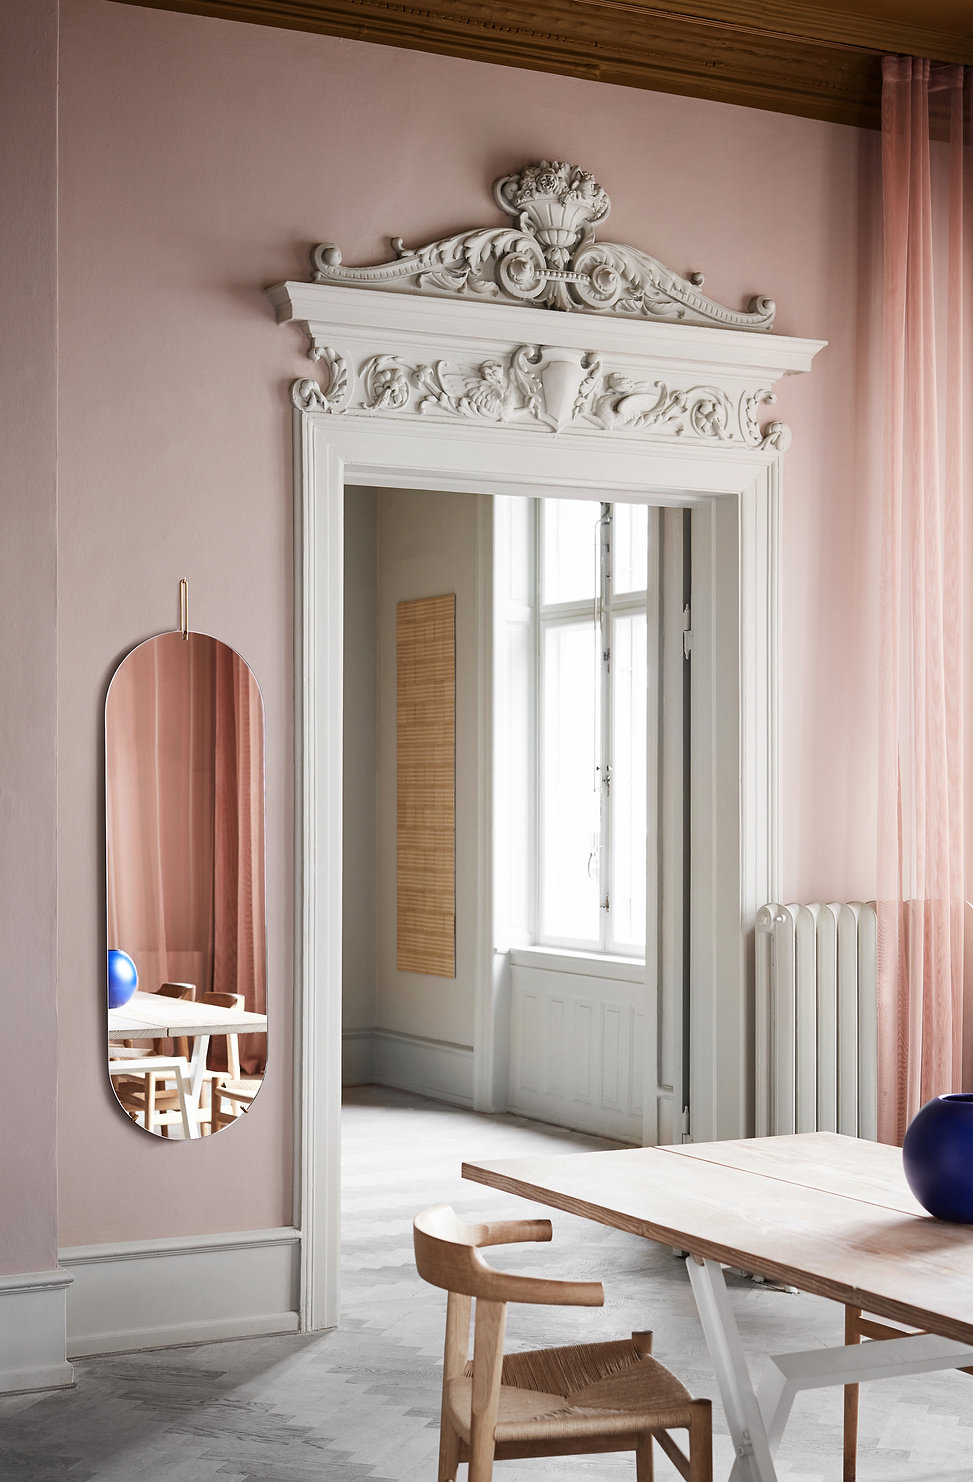 MOEBE_TALL-WALL-MIRROR_IN-CONTEXT_LOW-RE